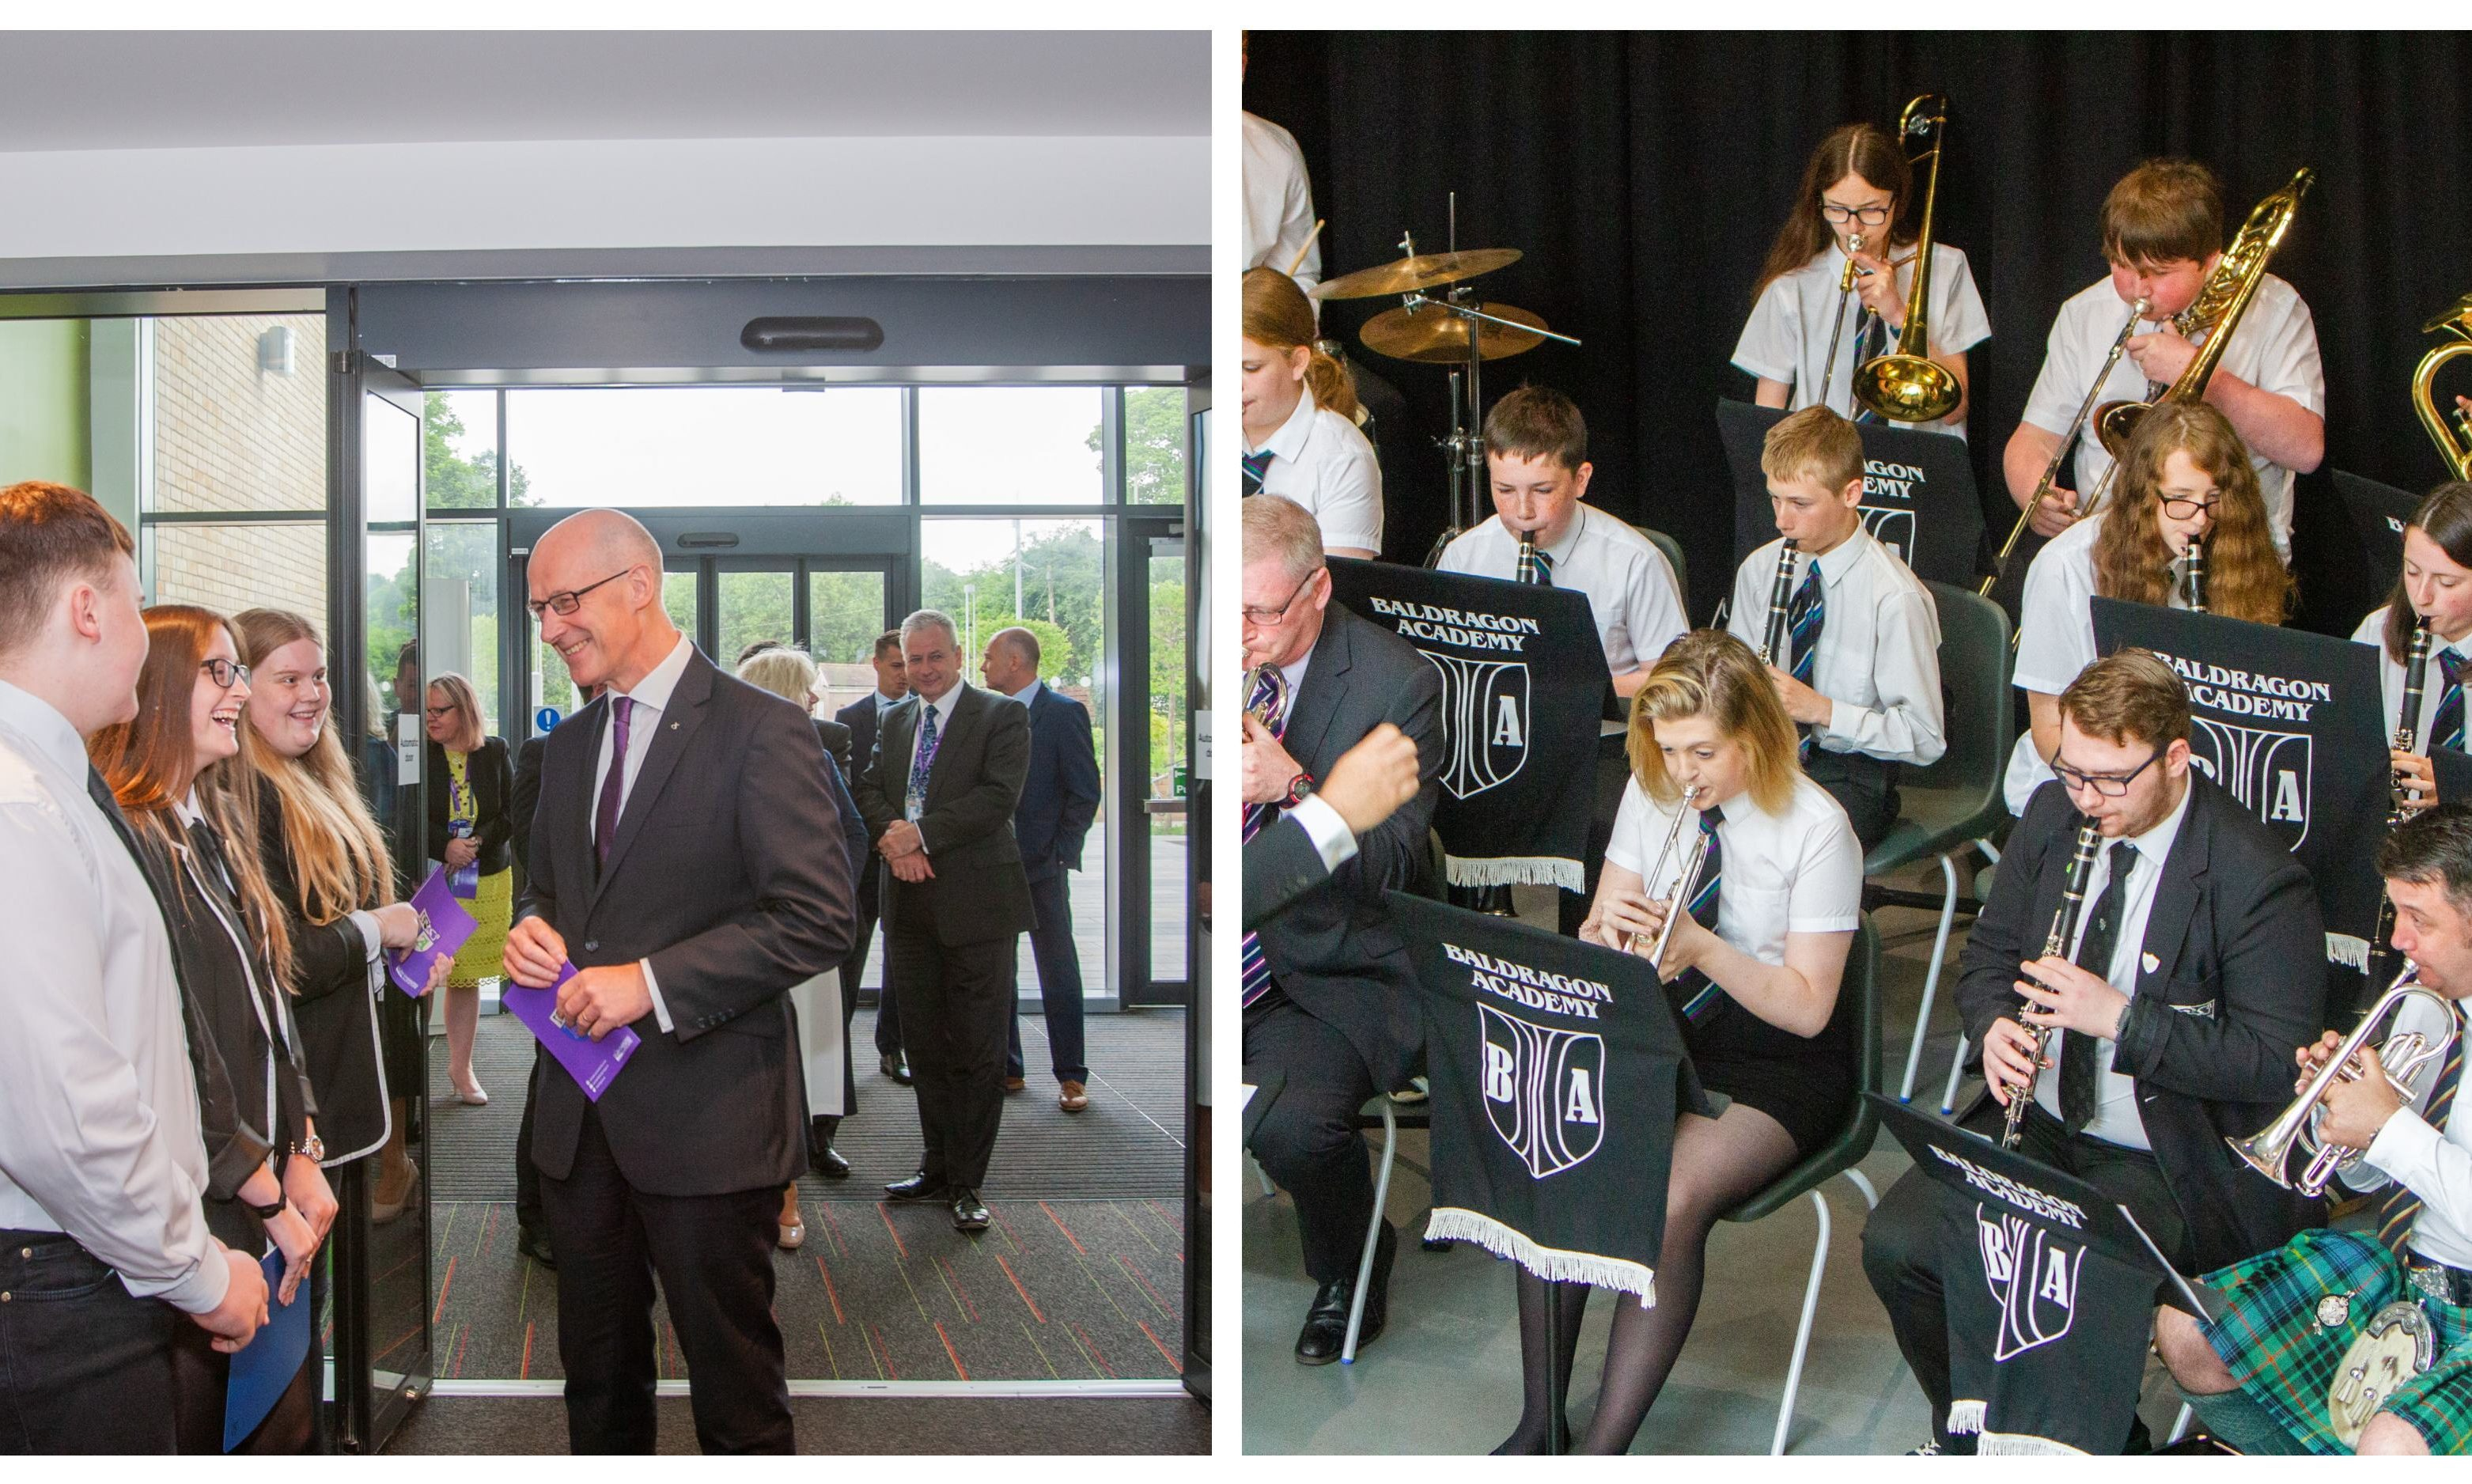 John Swinney at the official opening of the new Baldragon Academy